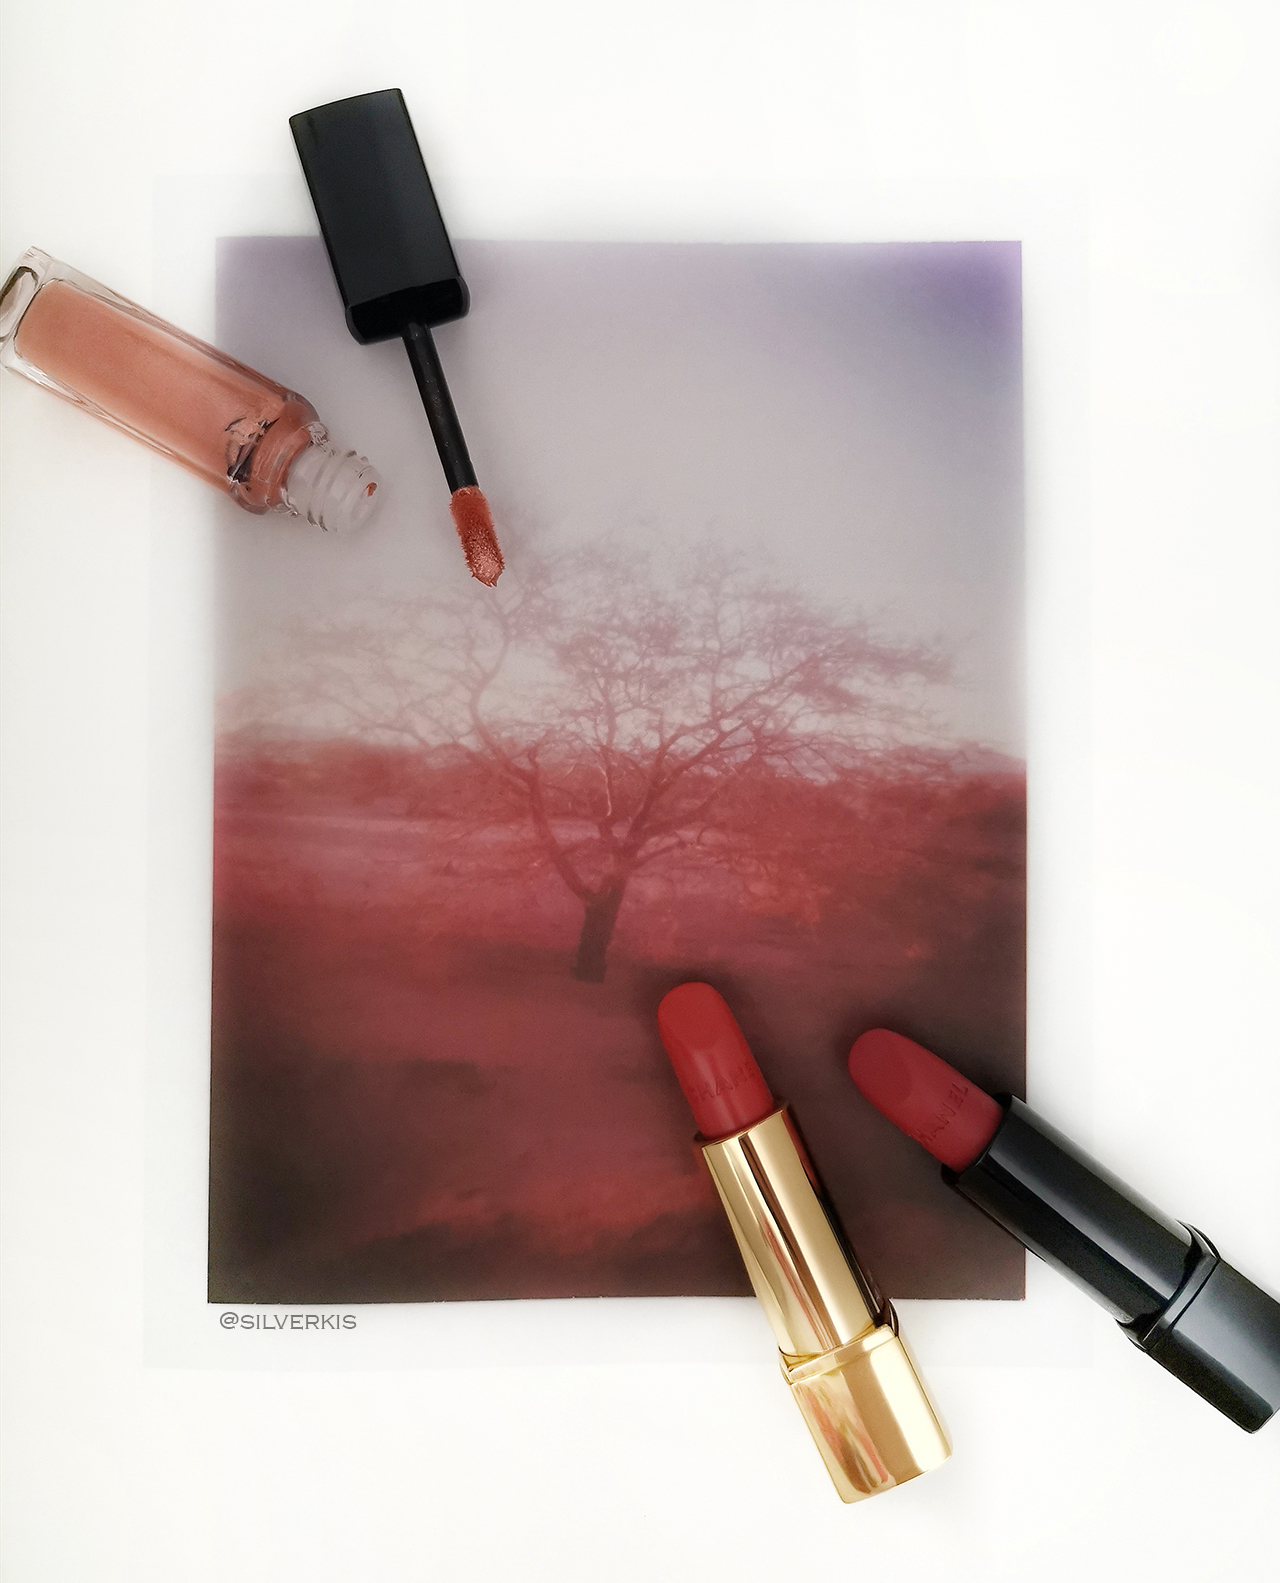 Chanel Desert Dream collection lipcolor